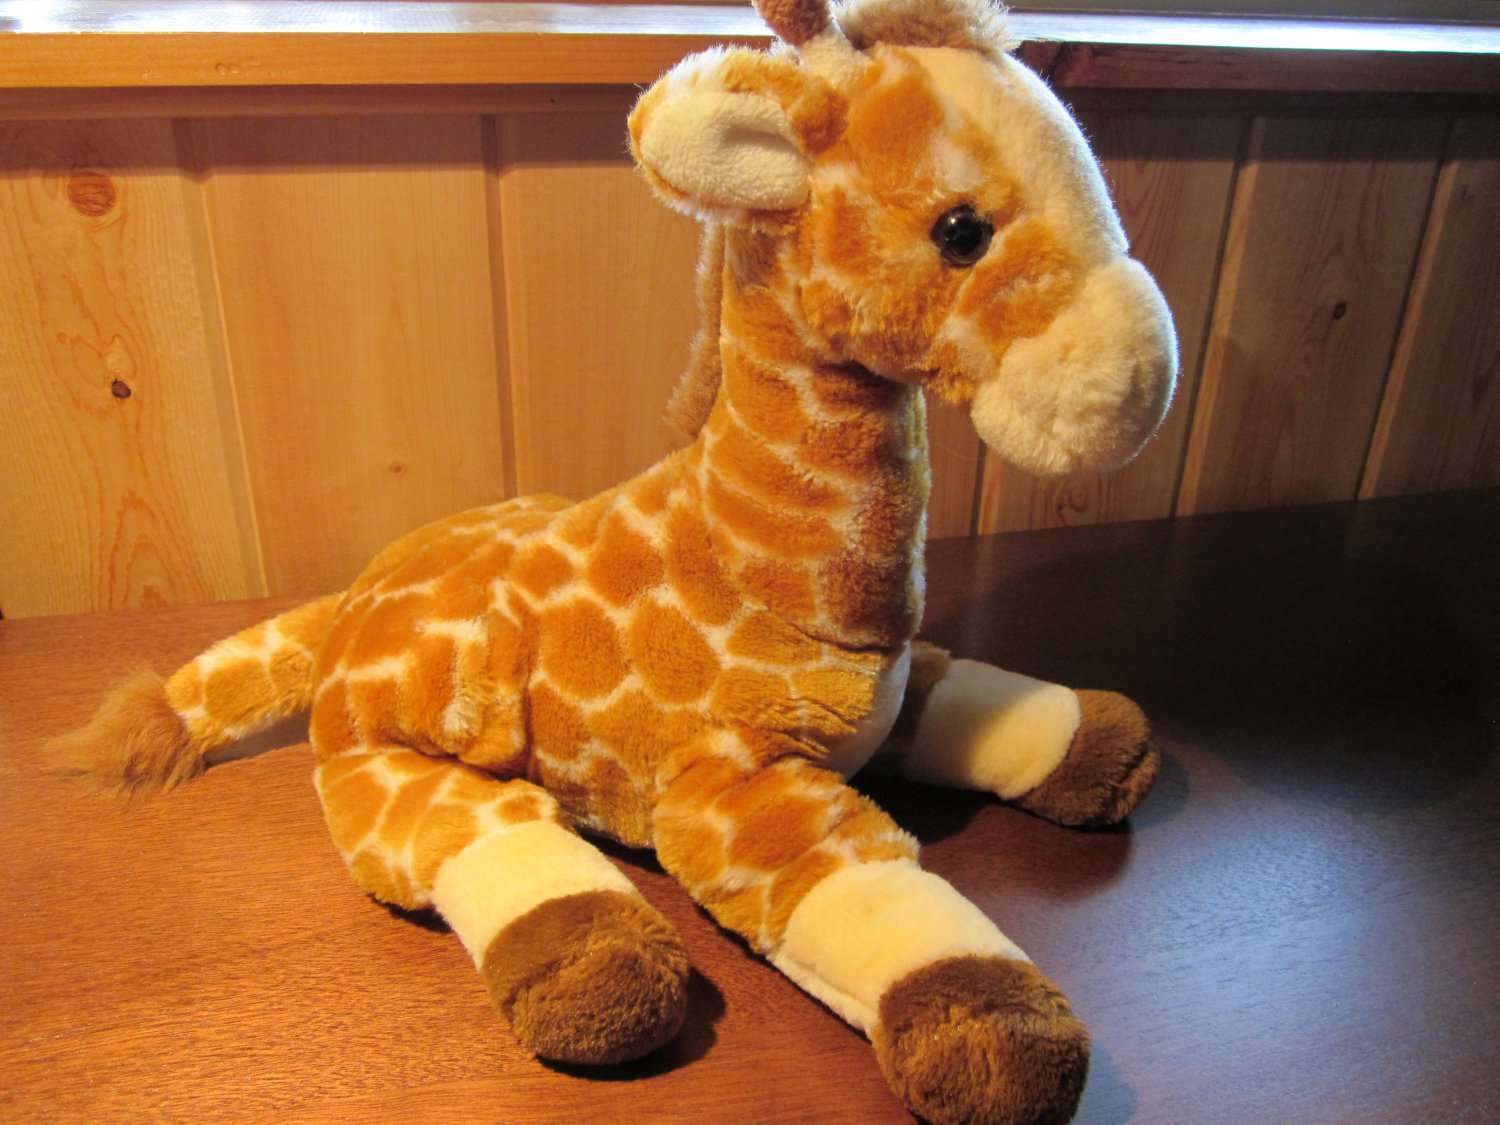 Animal Planet Plush Giraffe Kohls 15 Quot Adorable